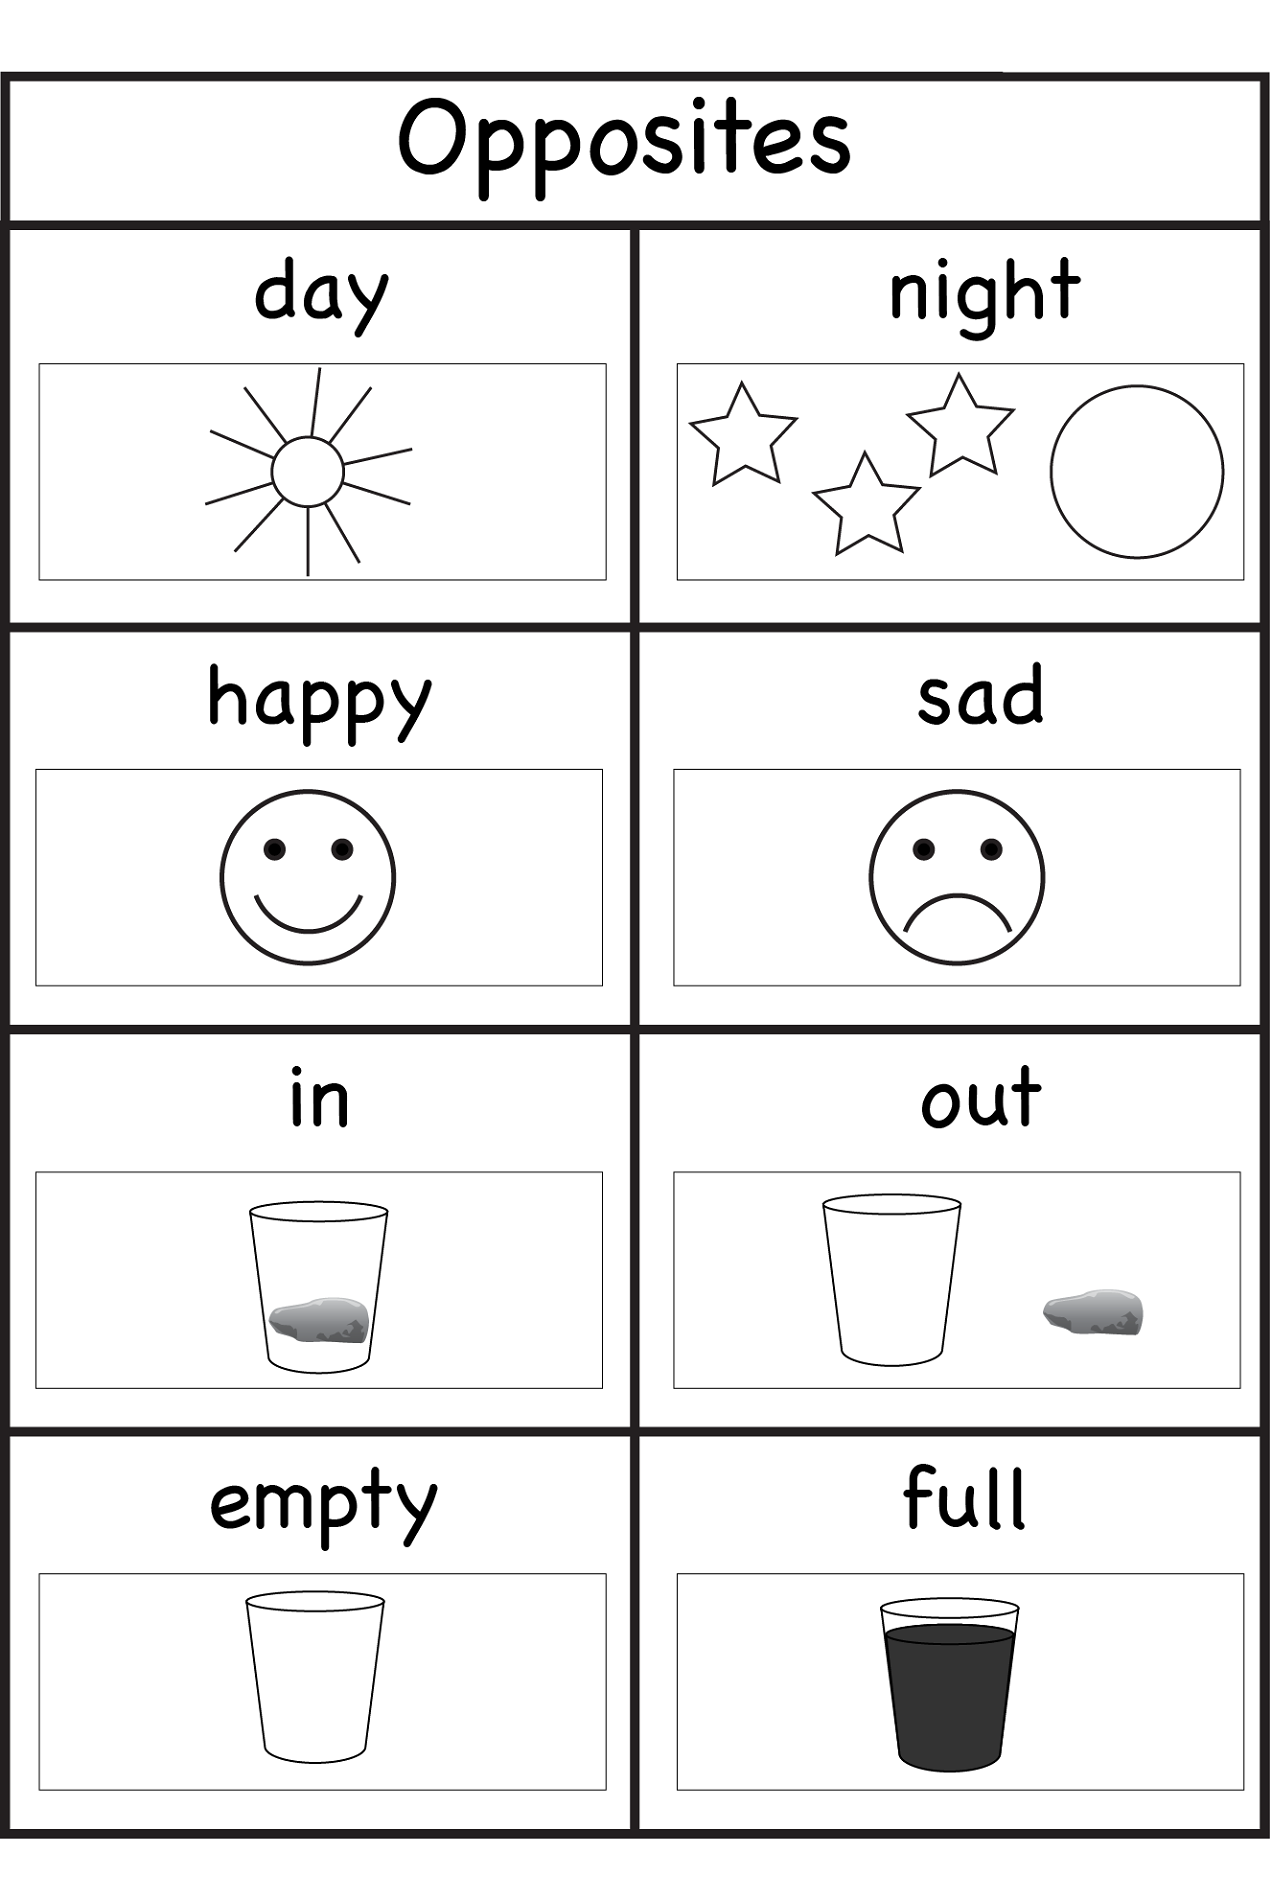 worksheets for 5 year olds opposite